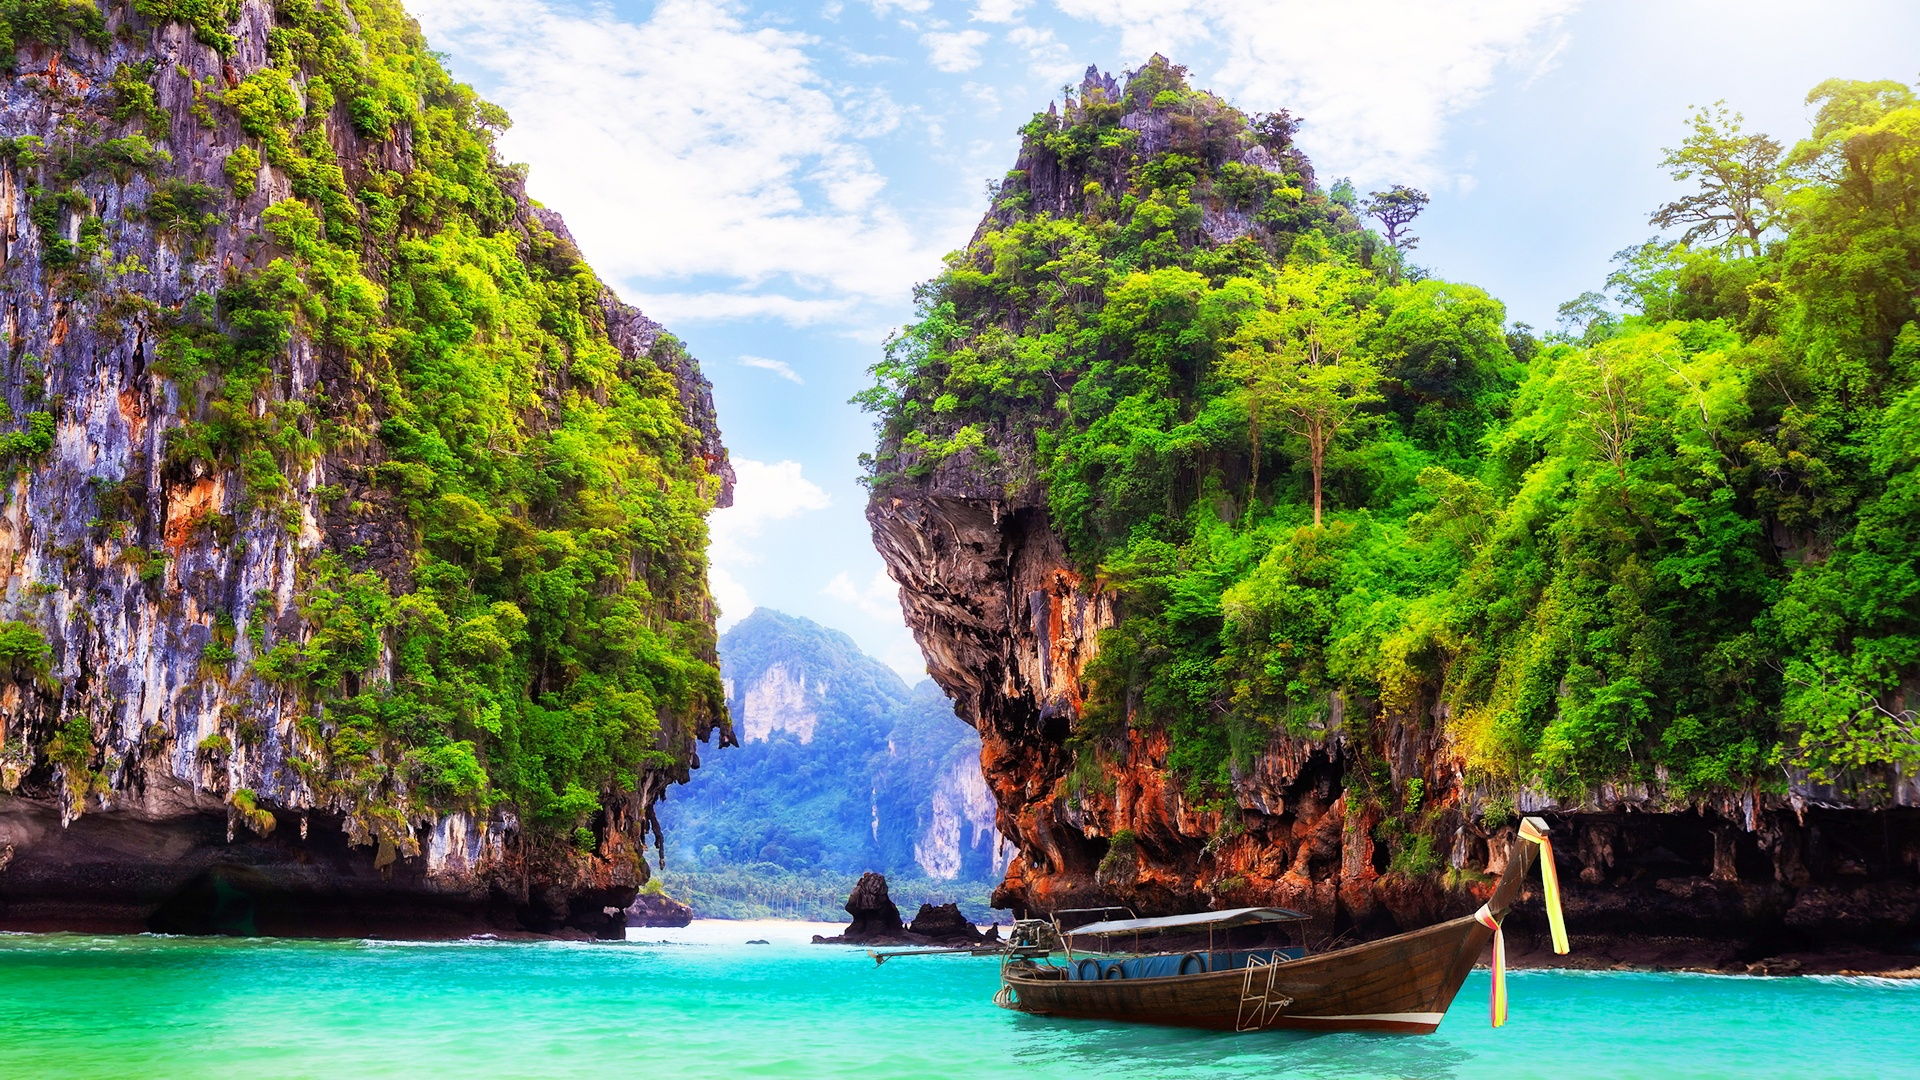 Download 62 full hd thailand wallpaper for desktop and mobile for Desktop sfondi hd